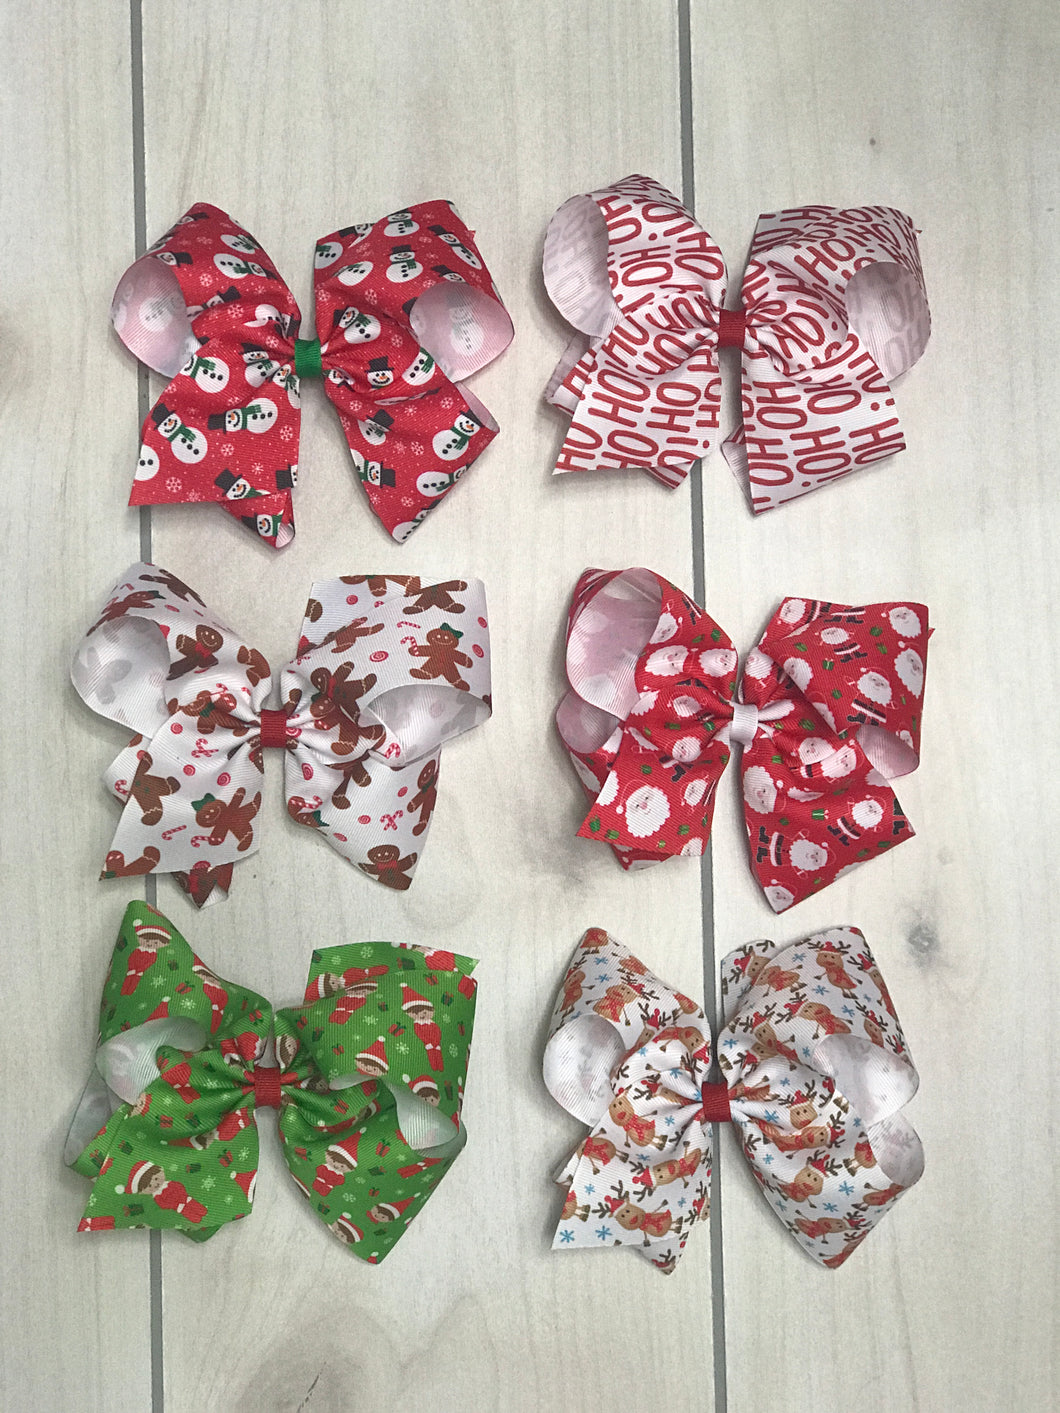 King Size Wee Ones Christmas Bows - Adalynn's Attic